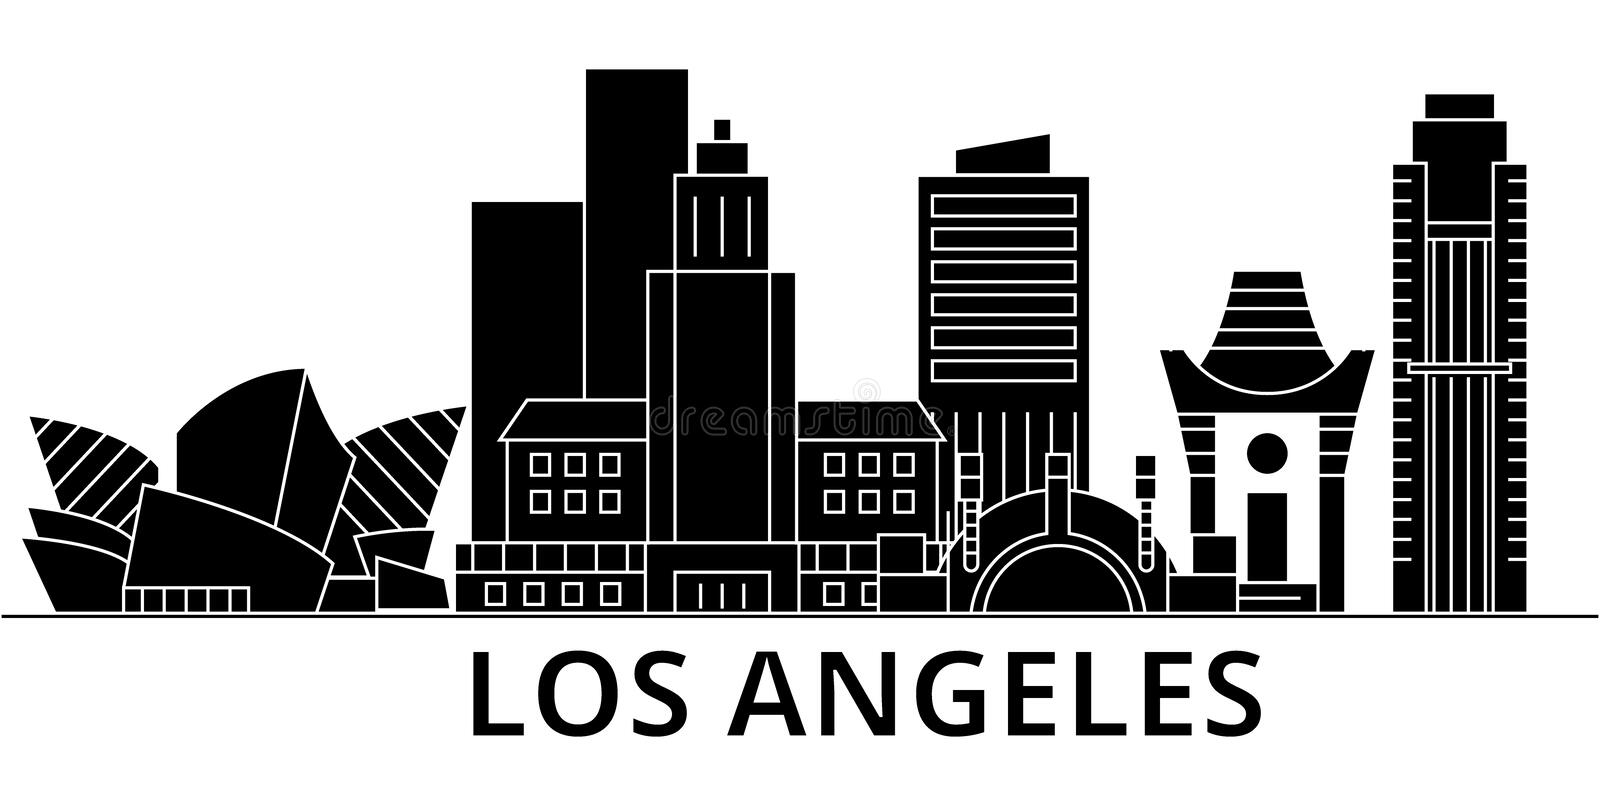 Los Angeles architecture vector city skyline, travel cityscape with landmarks, buildings, isolated sights on background. Los Angeles architecture vector city vector illustration